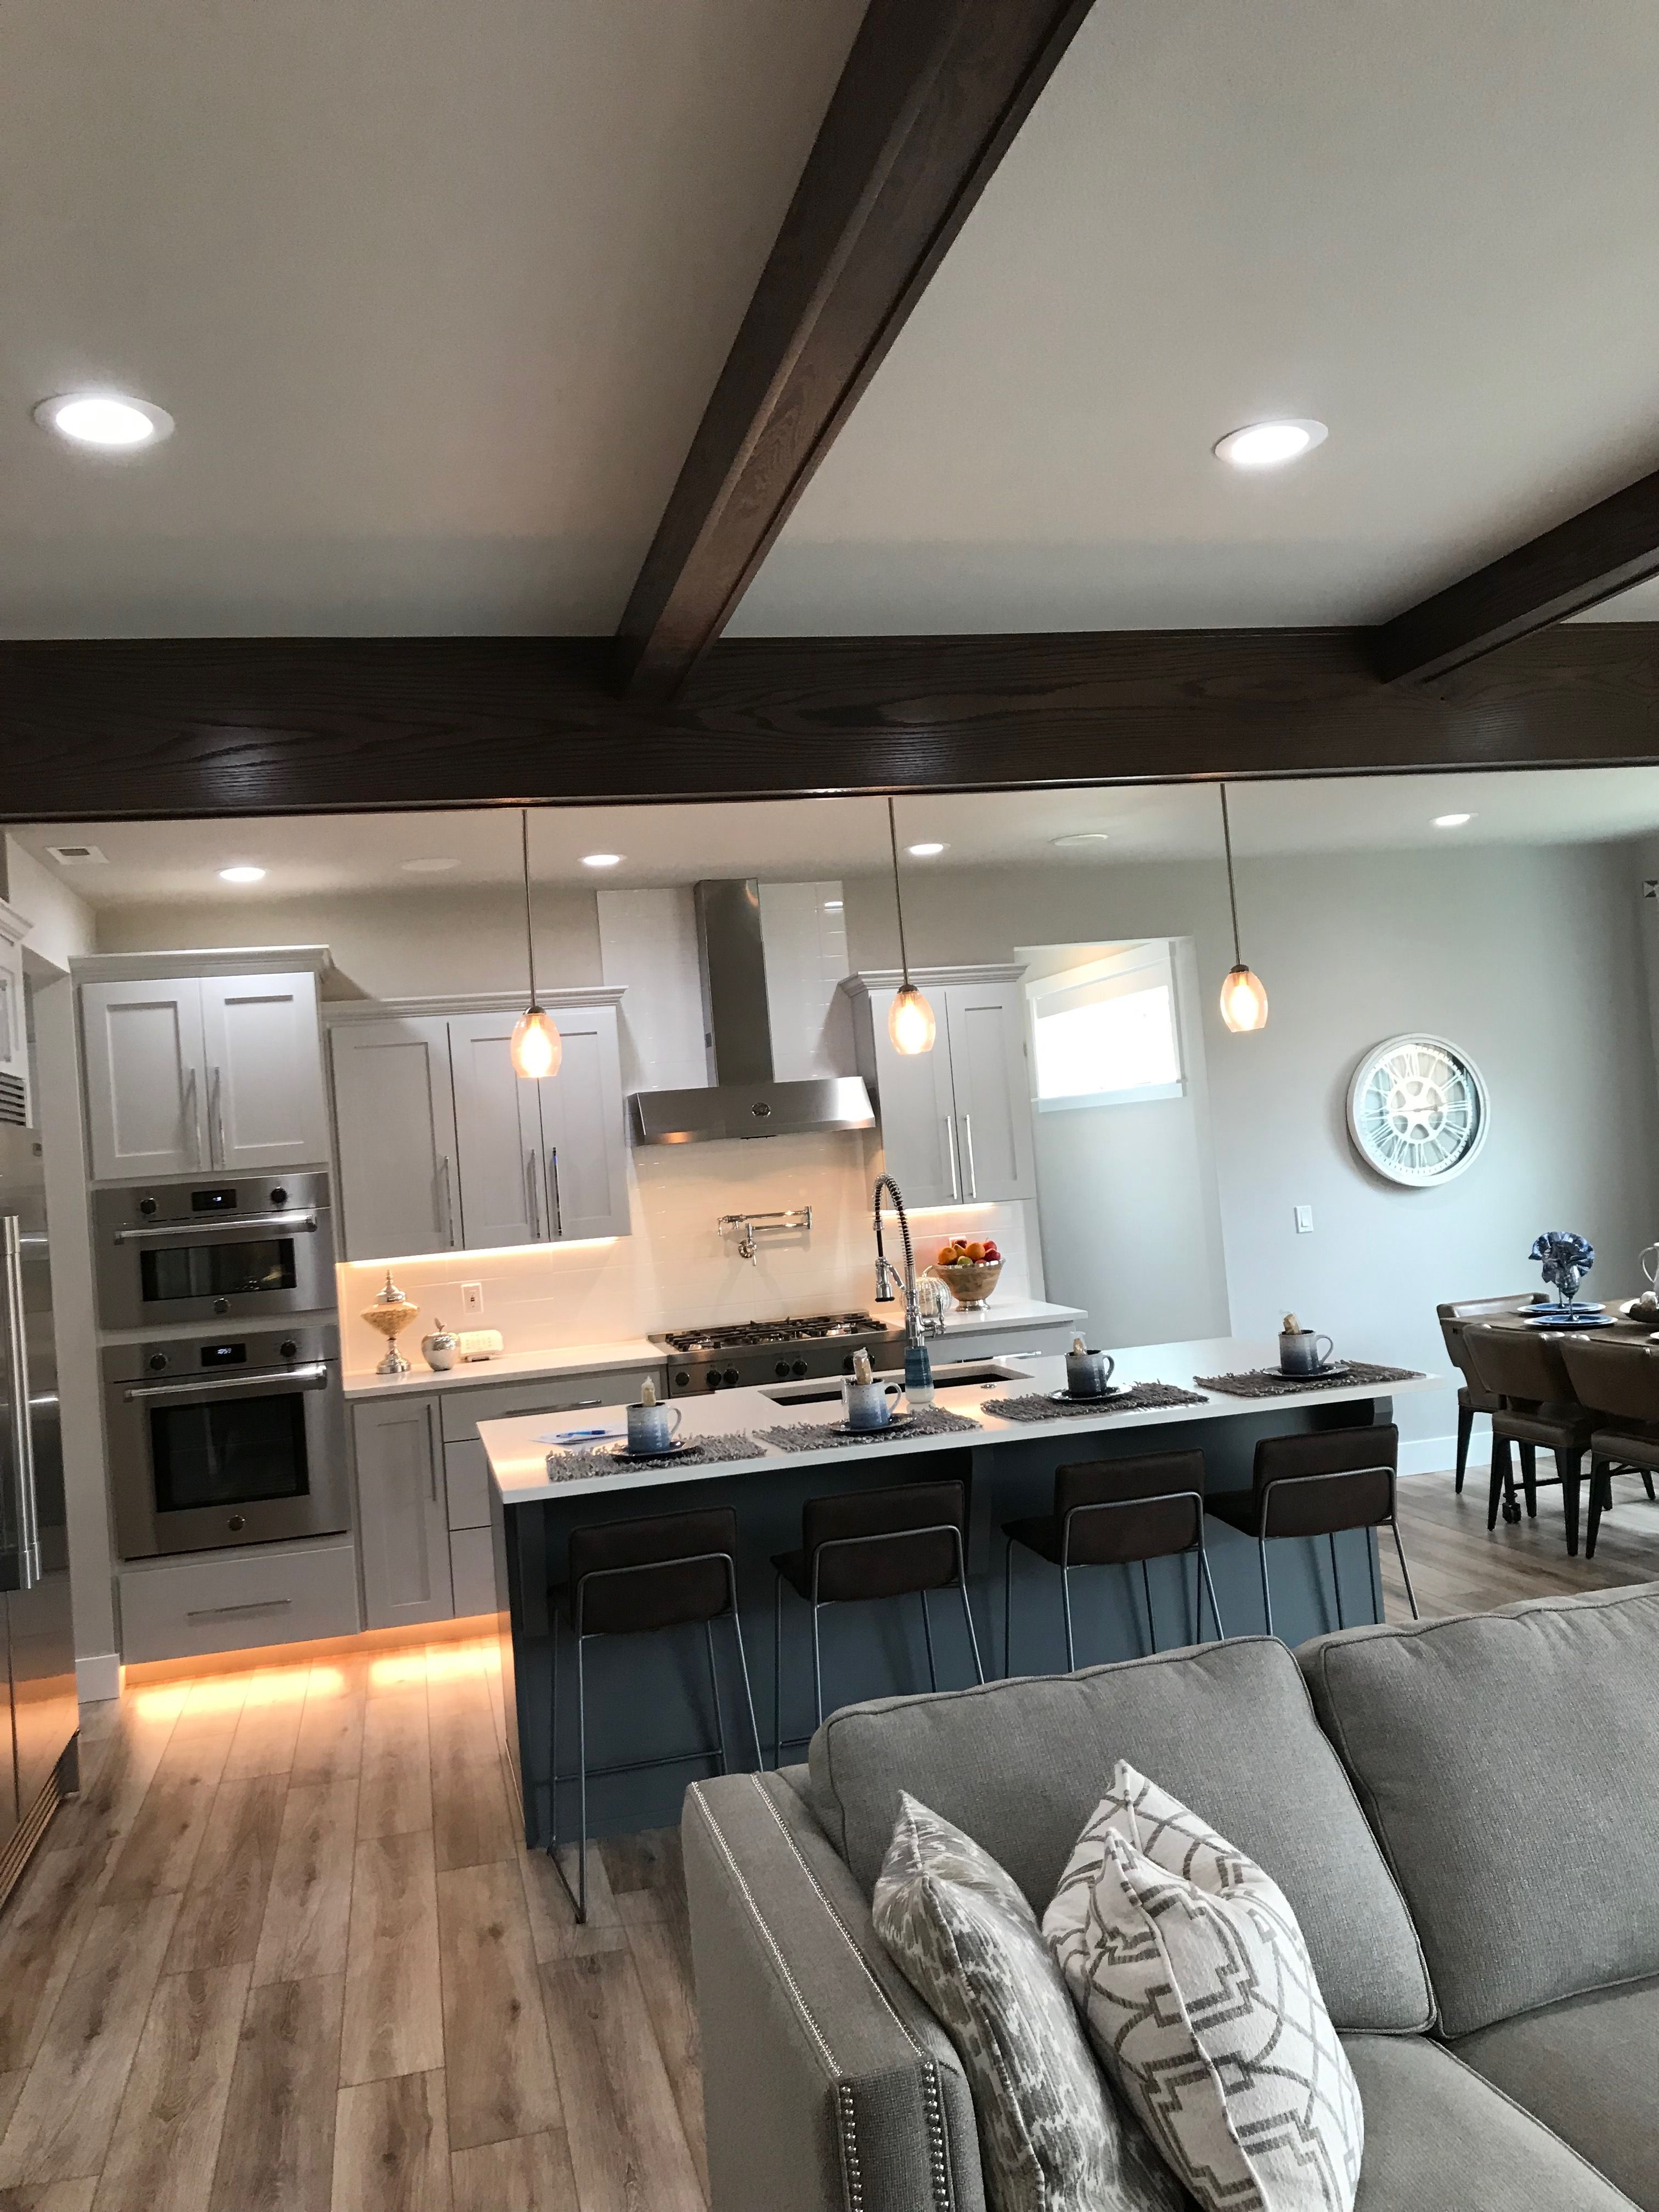 Light gray cabinets with lighting almost the same footprint as ours